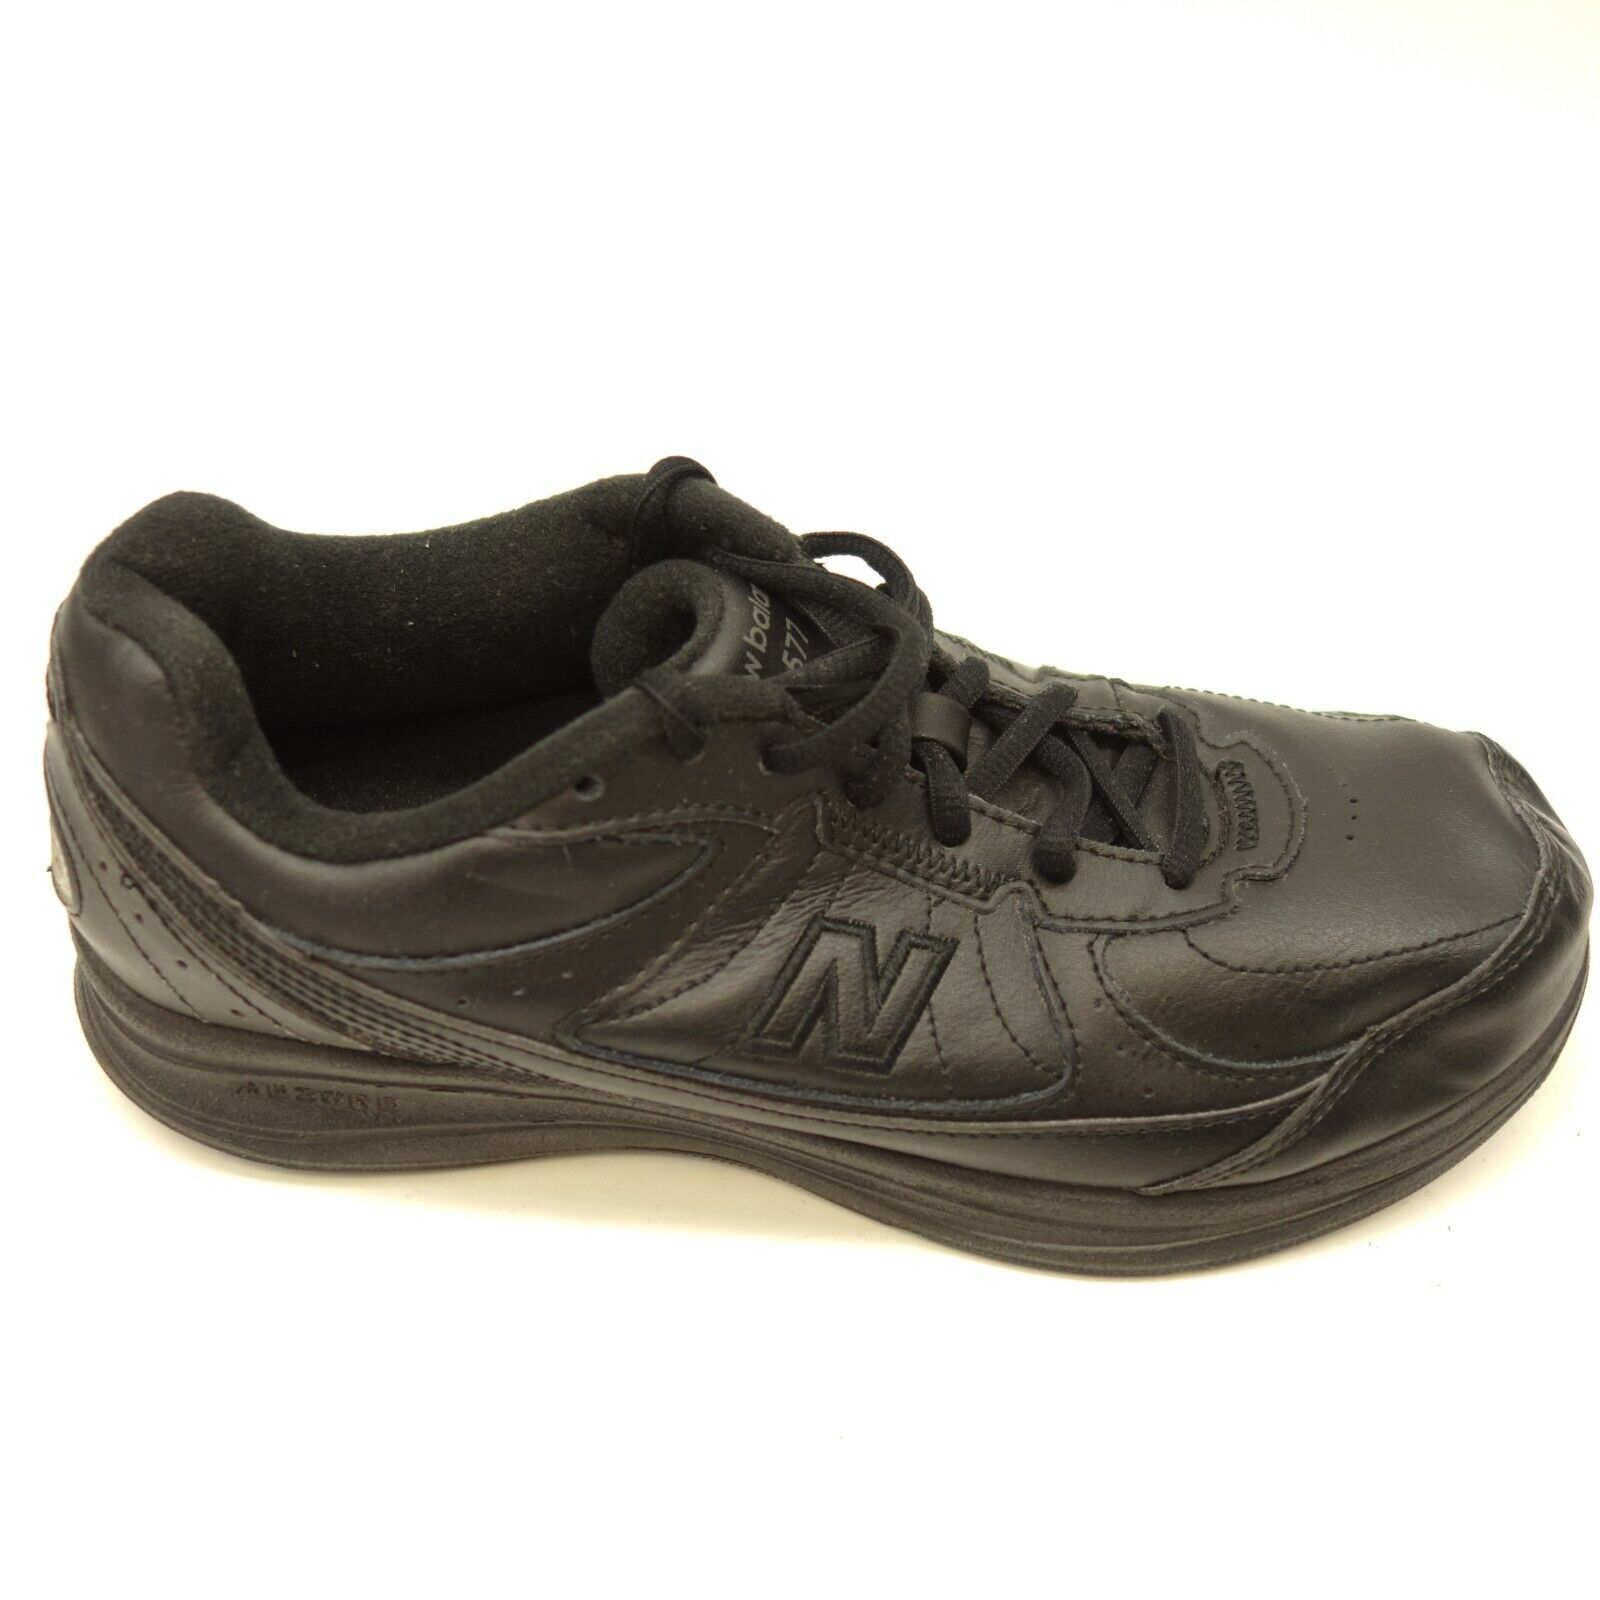 New Balance 577 US 8D EU 39 Wide Black Walking Training Athletic Womens shoes